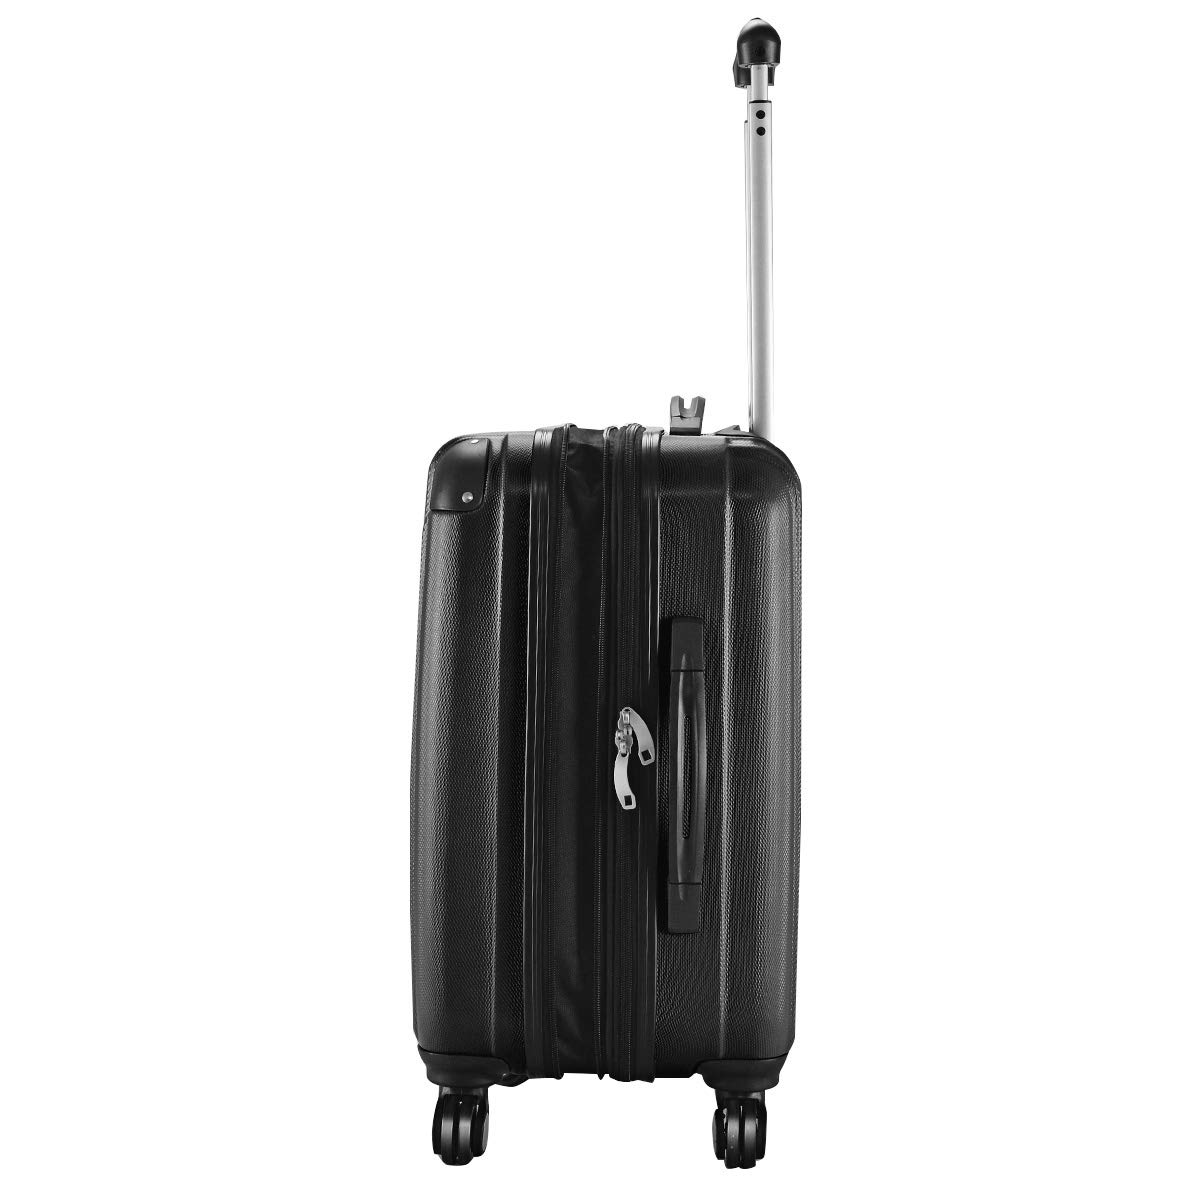 Goplus 20'' ABS Carry On Luggage Expandable Hardside Travel Bag Trolley Rolling Suitcase GLOBALWAY (Black) by Goplus (Image #3)